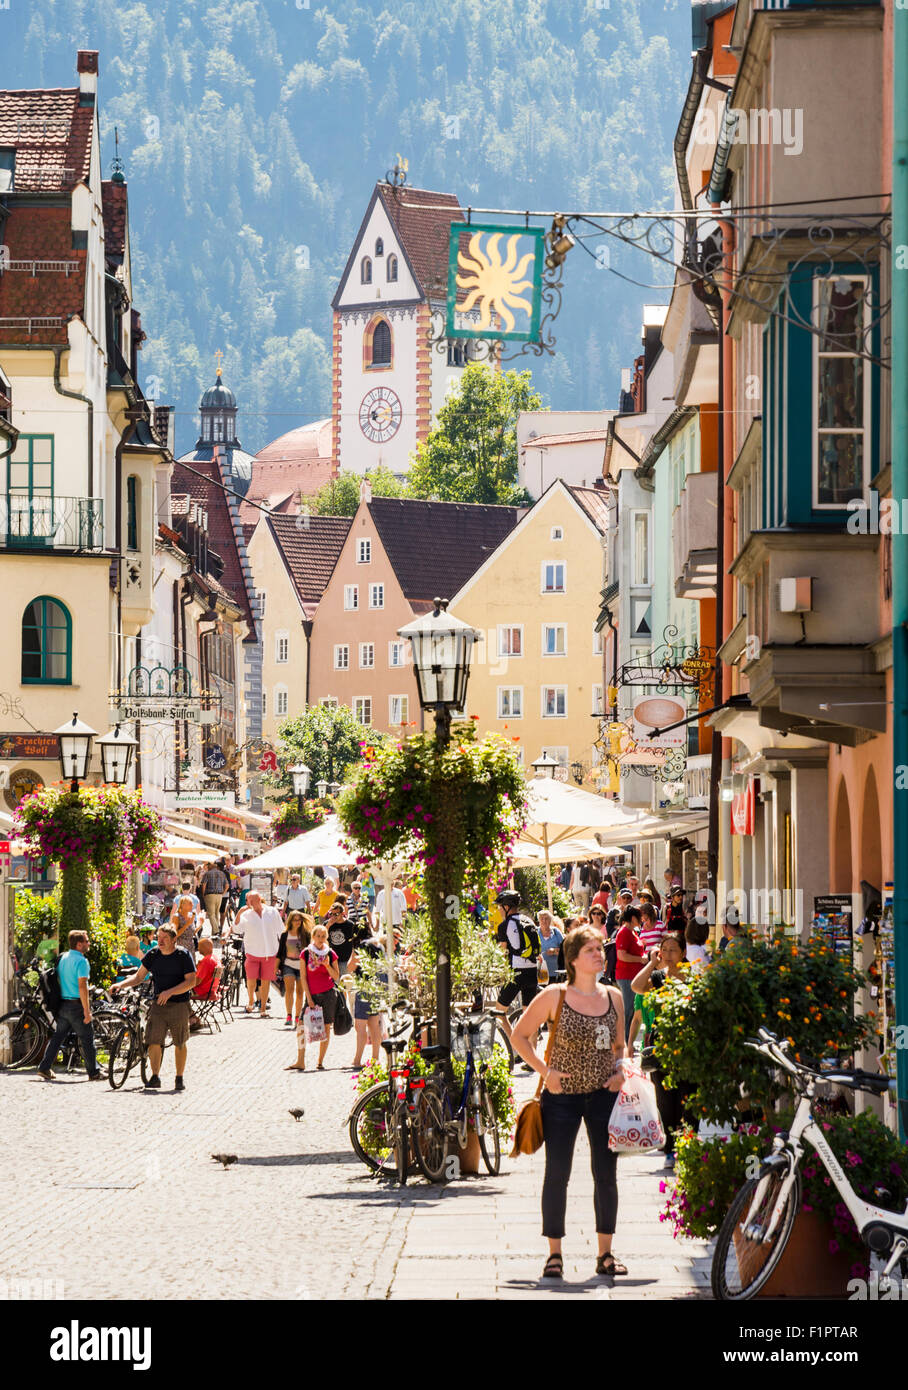 Tourists in the pedestrian area of Fuessen. - Stock Image